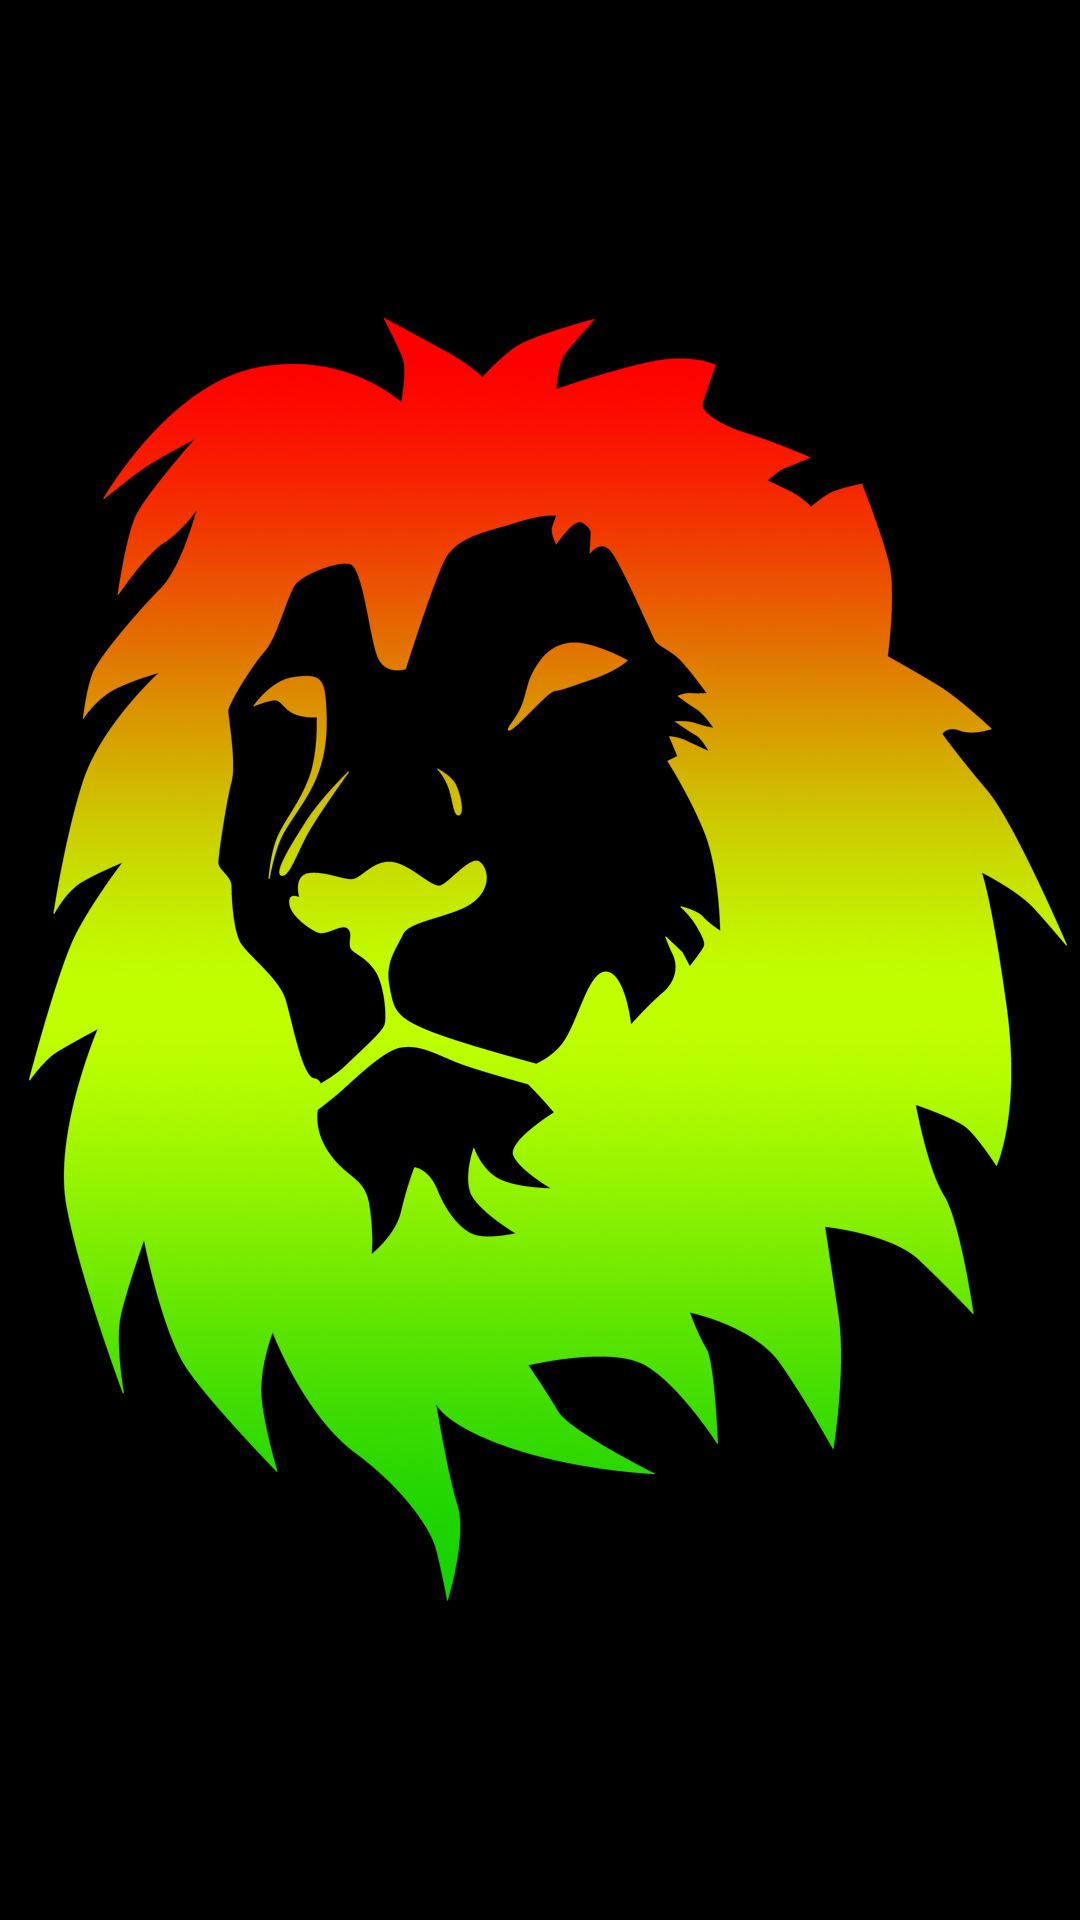 Wallpaper iphone rasta - Hd Rasta Wallpapers Wallpaper